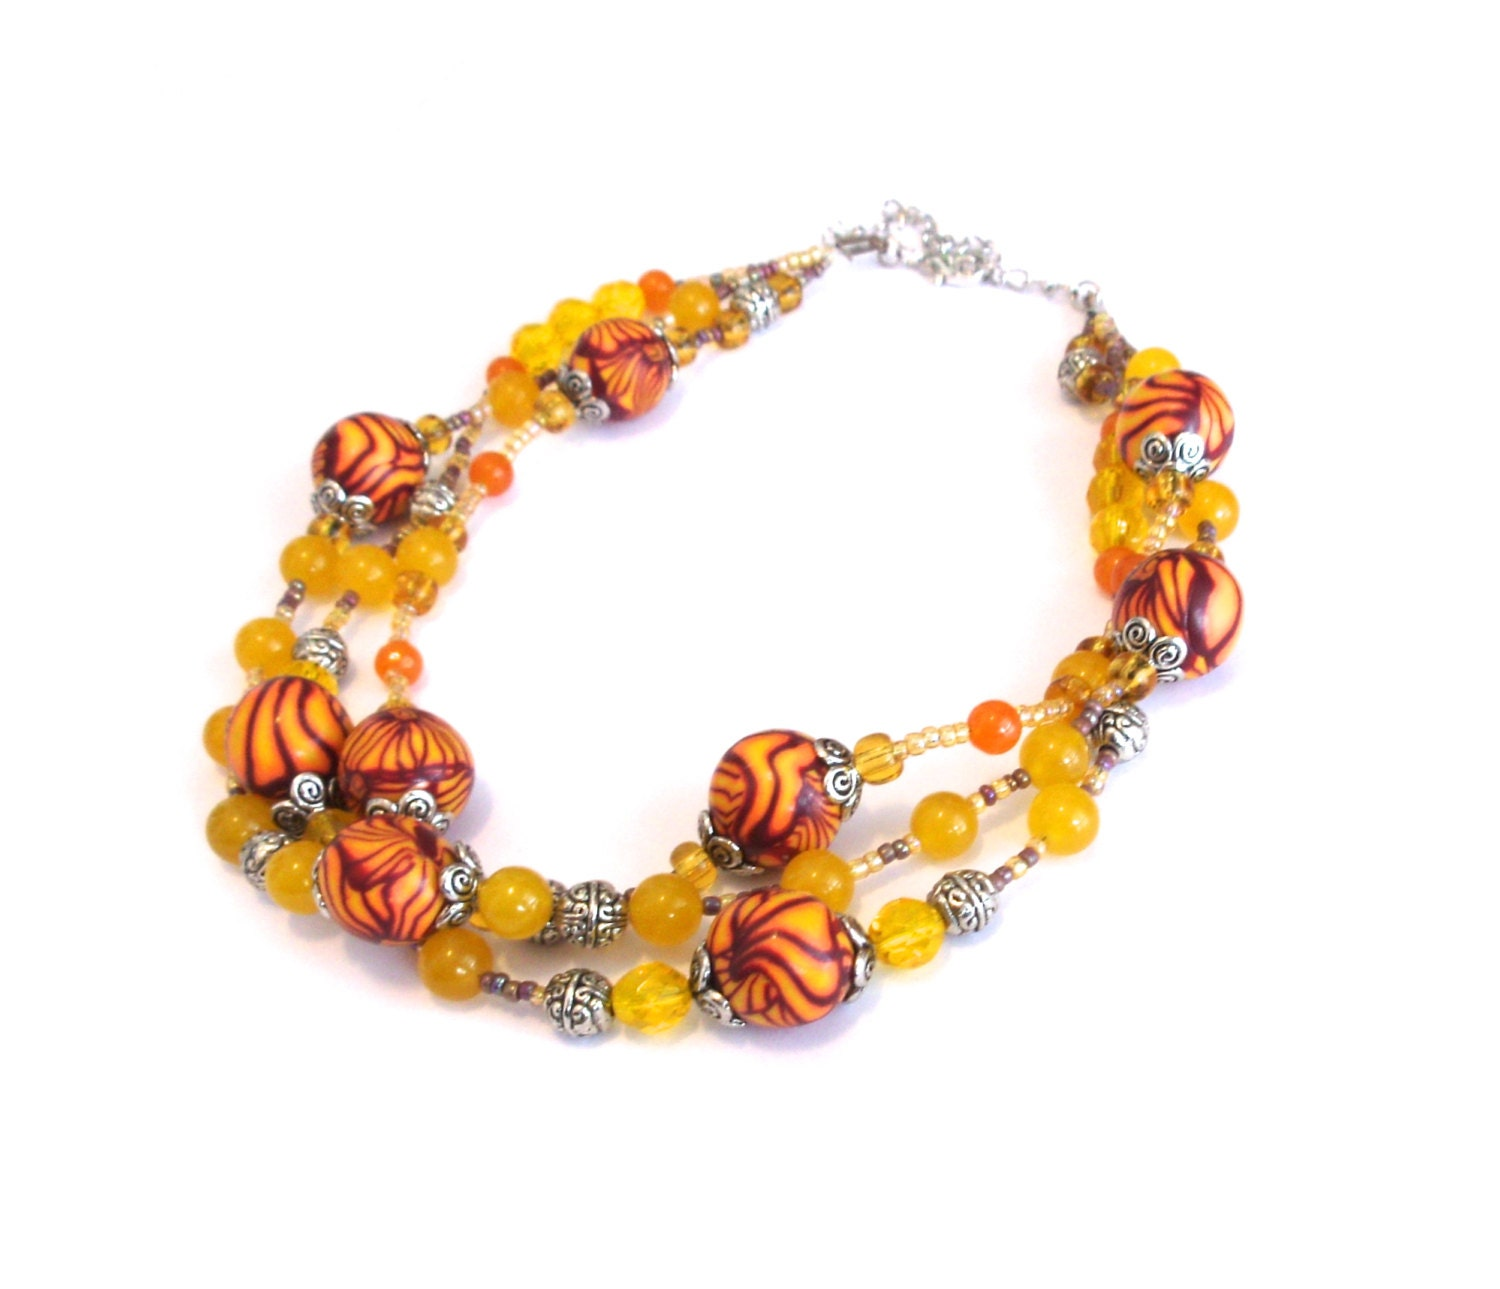 Summertime bliss handmade three stranded necklace in shades of yellow, orange, and red with handmade polymer clay beads - Sallybateau